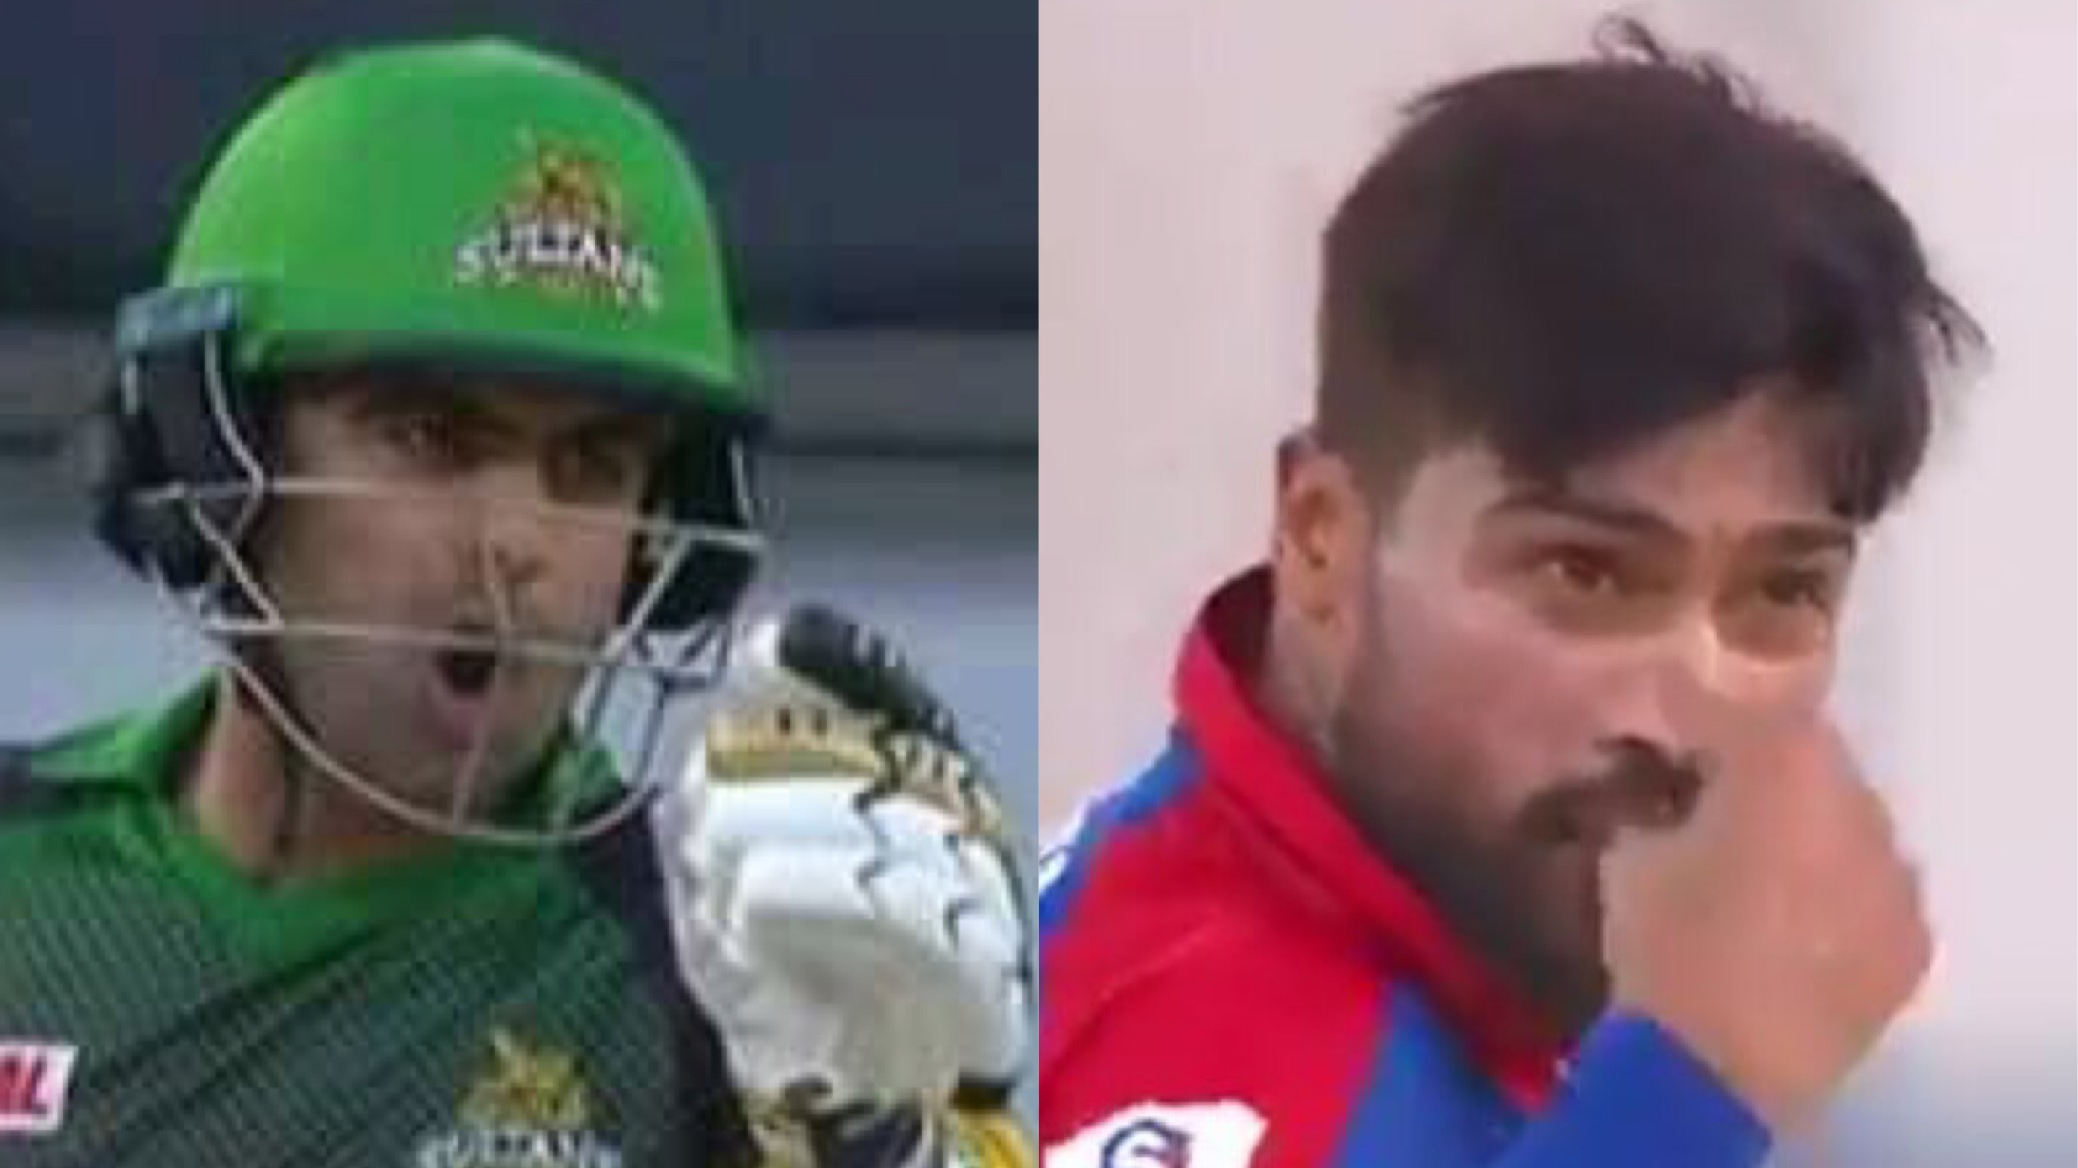 PSL 2018: Watch- Mohammed Amir and Ahmad Shahzad clash in a war of words